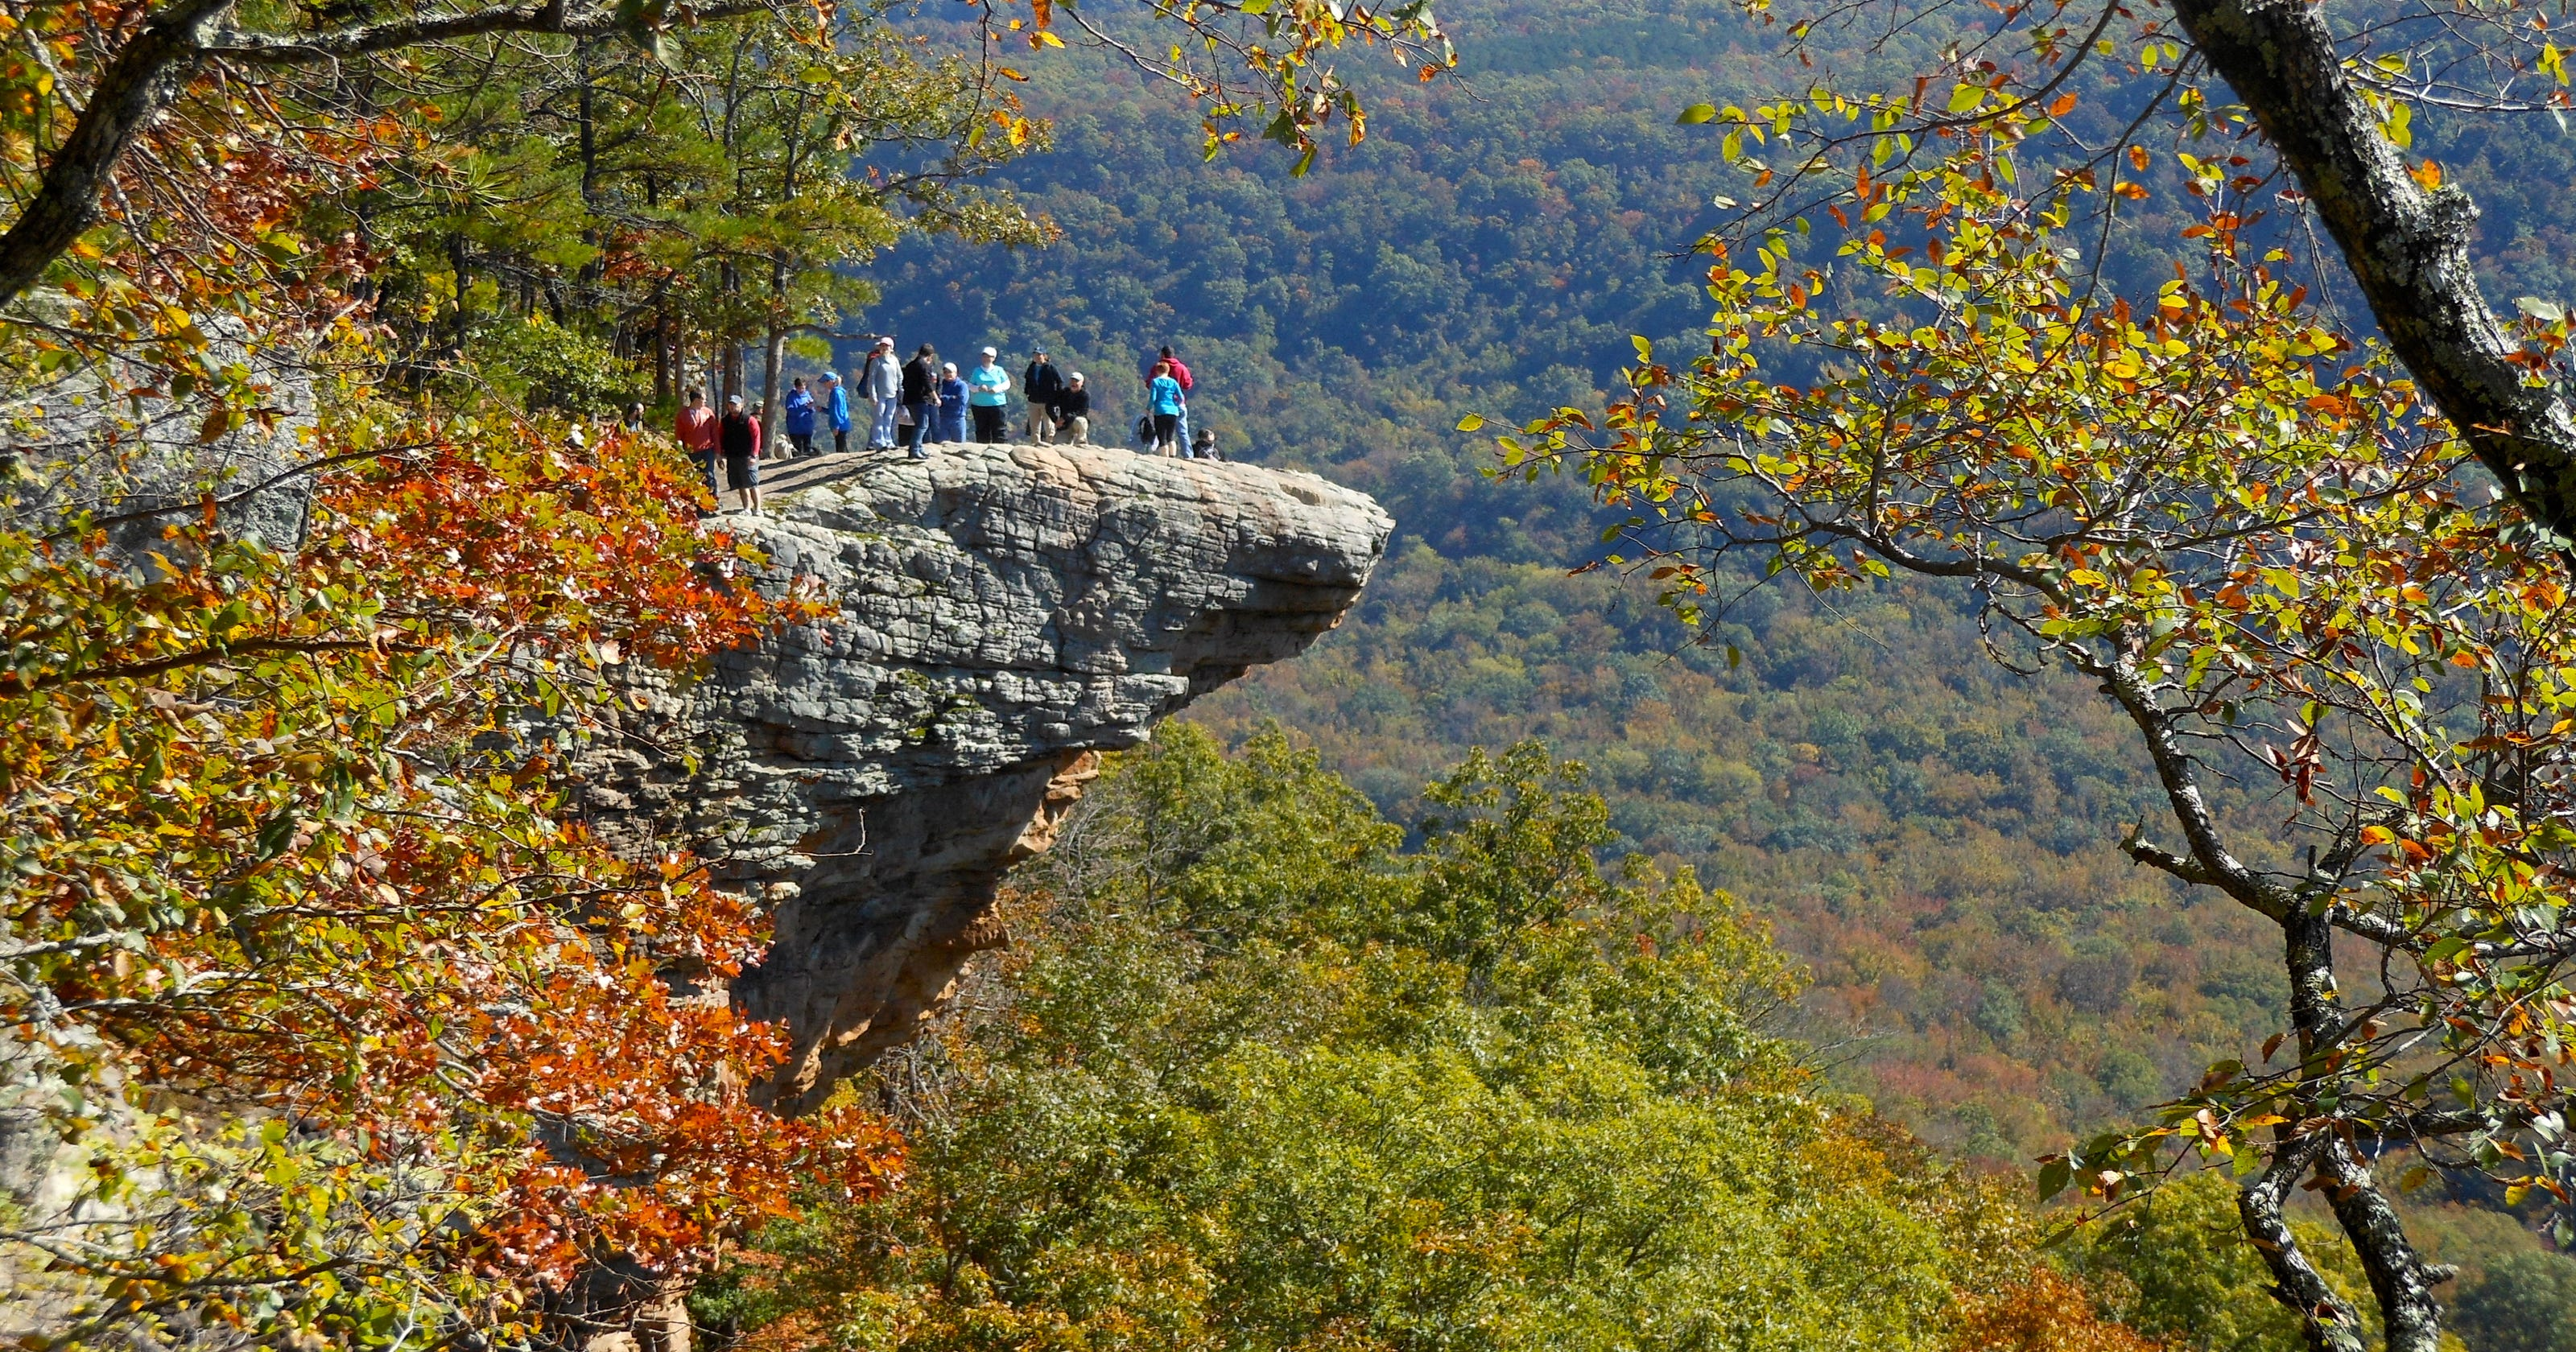 Young hiker killed in fall at Hawksbill Crag